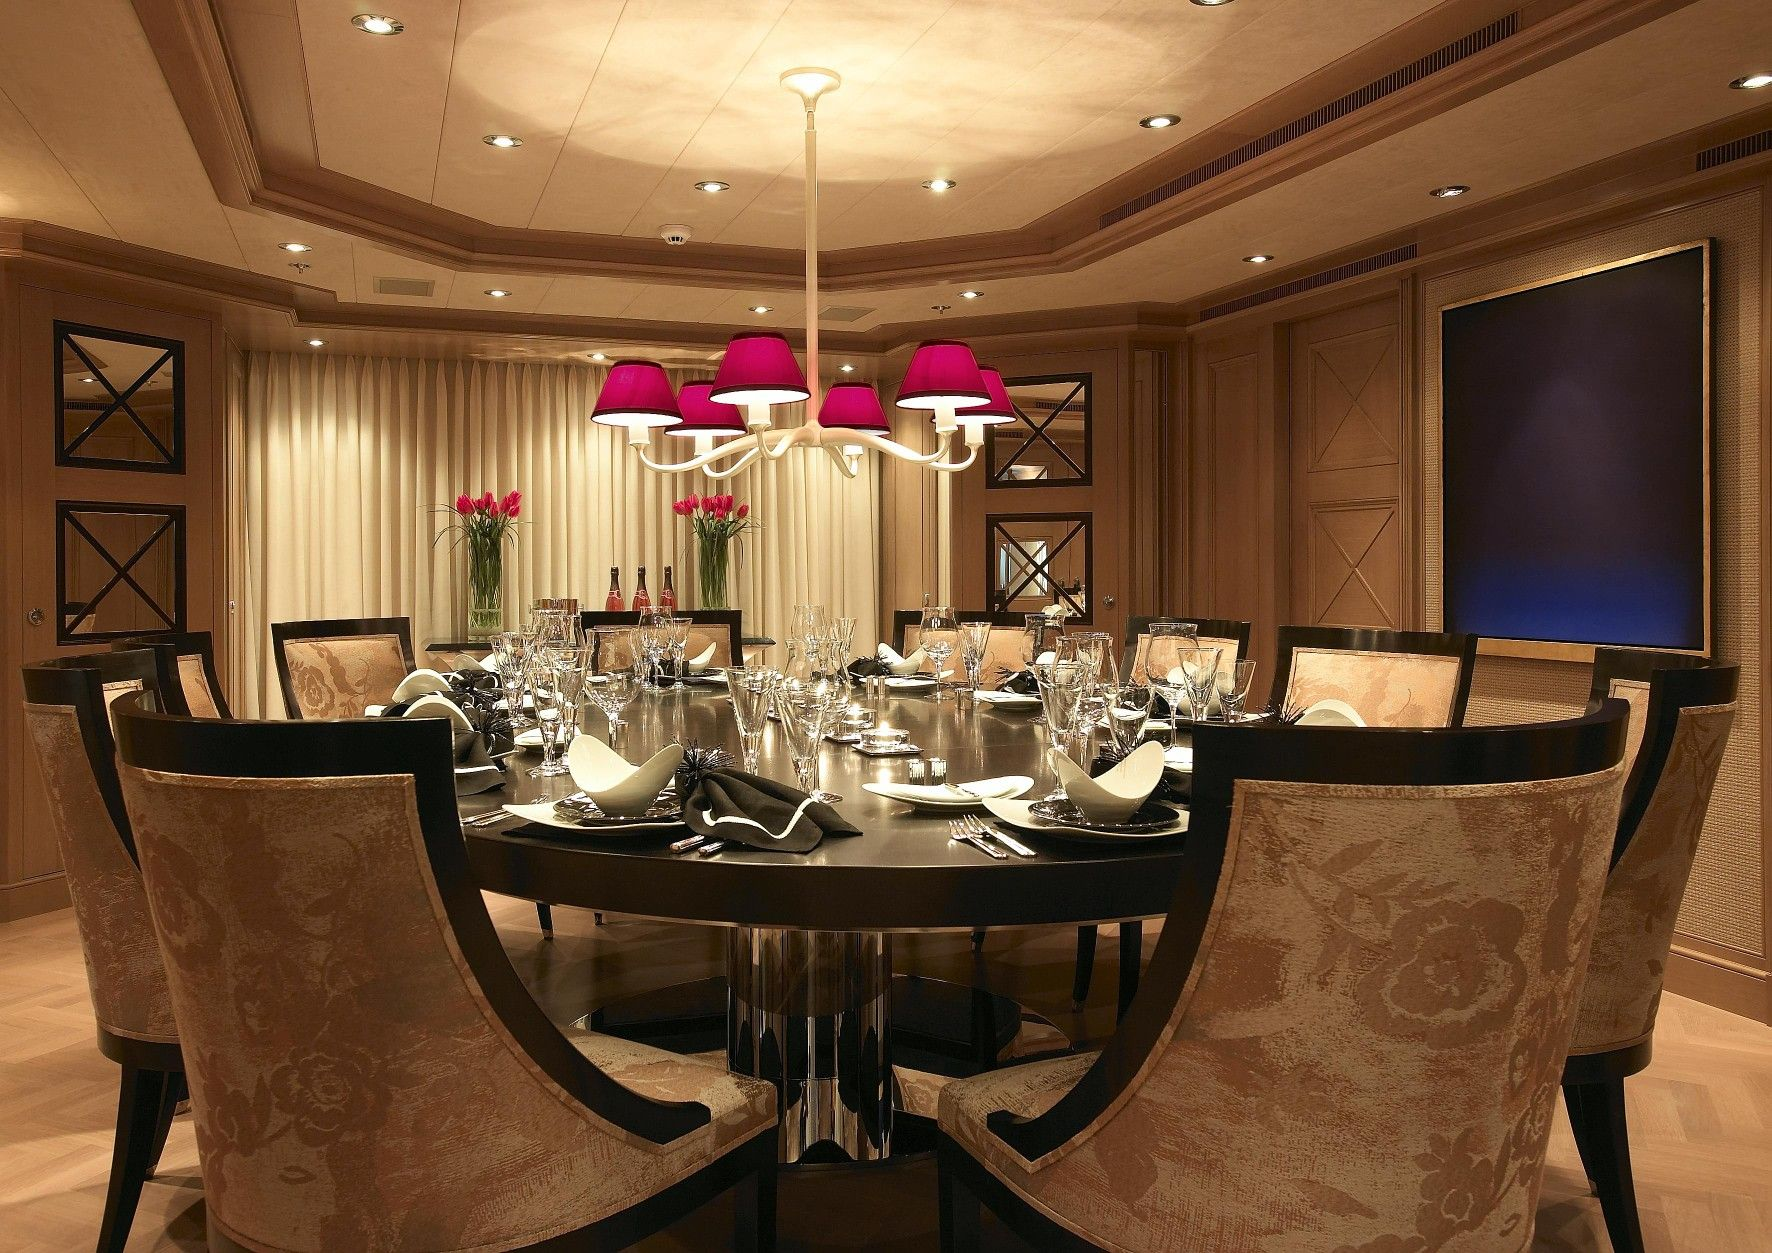 dining room simple united nations dining room home style tips loretto  community lorettonews twitter weill terrace room banquet setup carnegie  hall large. 100    Delegates Dining Room United Nations     10 Restaurants